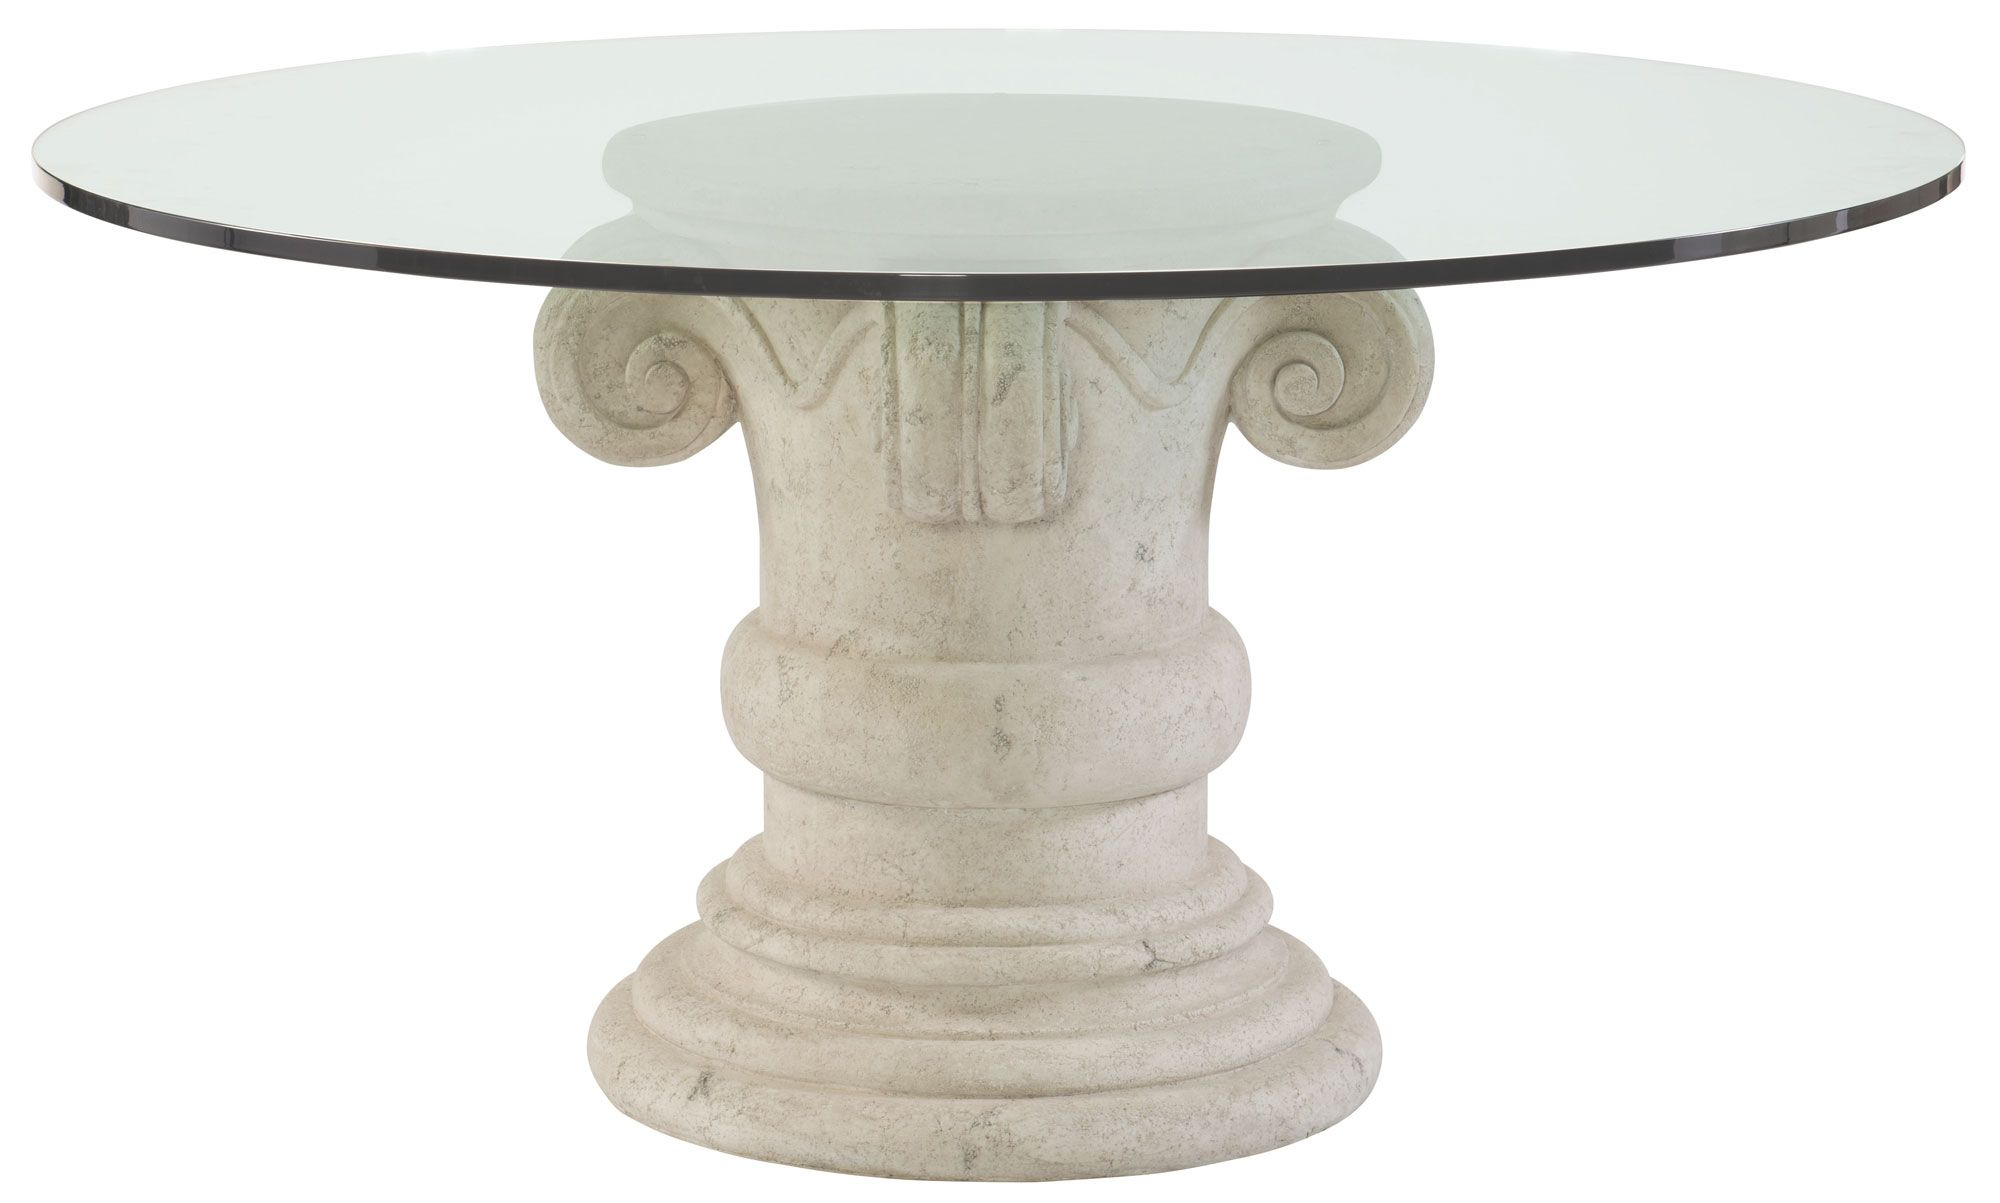 Round Dining Table Glass Top And Pedestal Base Bernhardt - Round kitchen table pedestal base